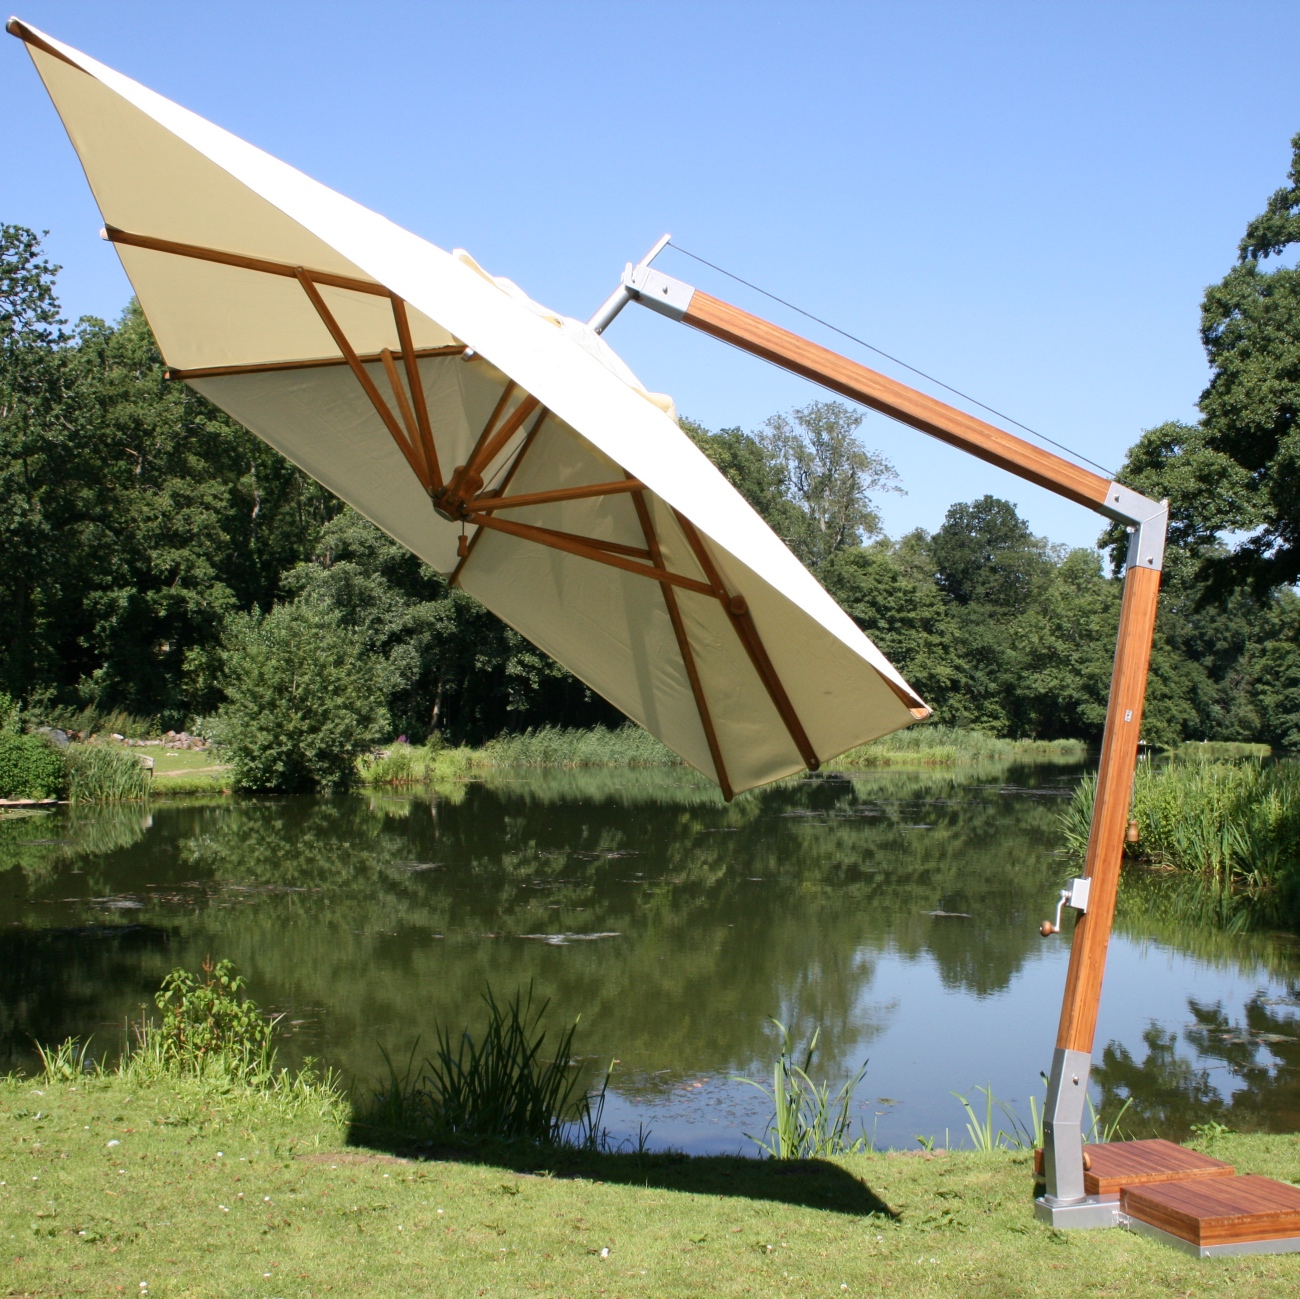 Luxury Cantilever Parasol Luxury Outdoor Living